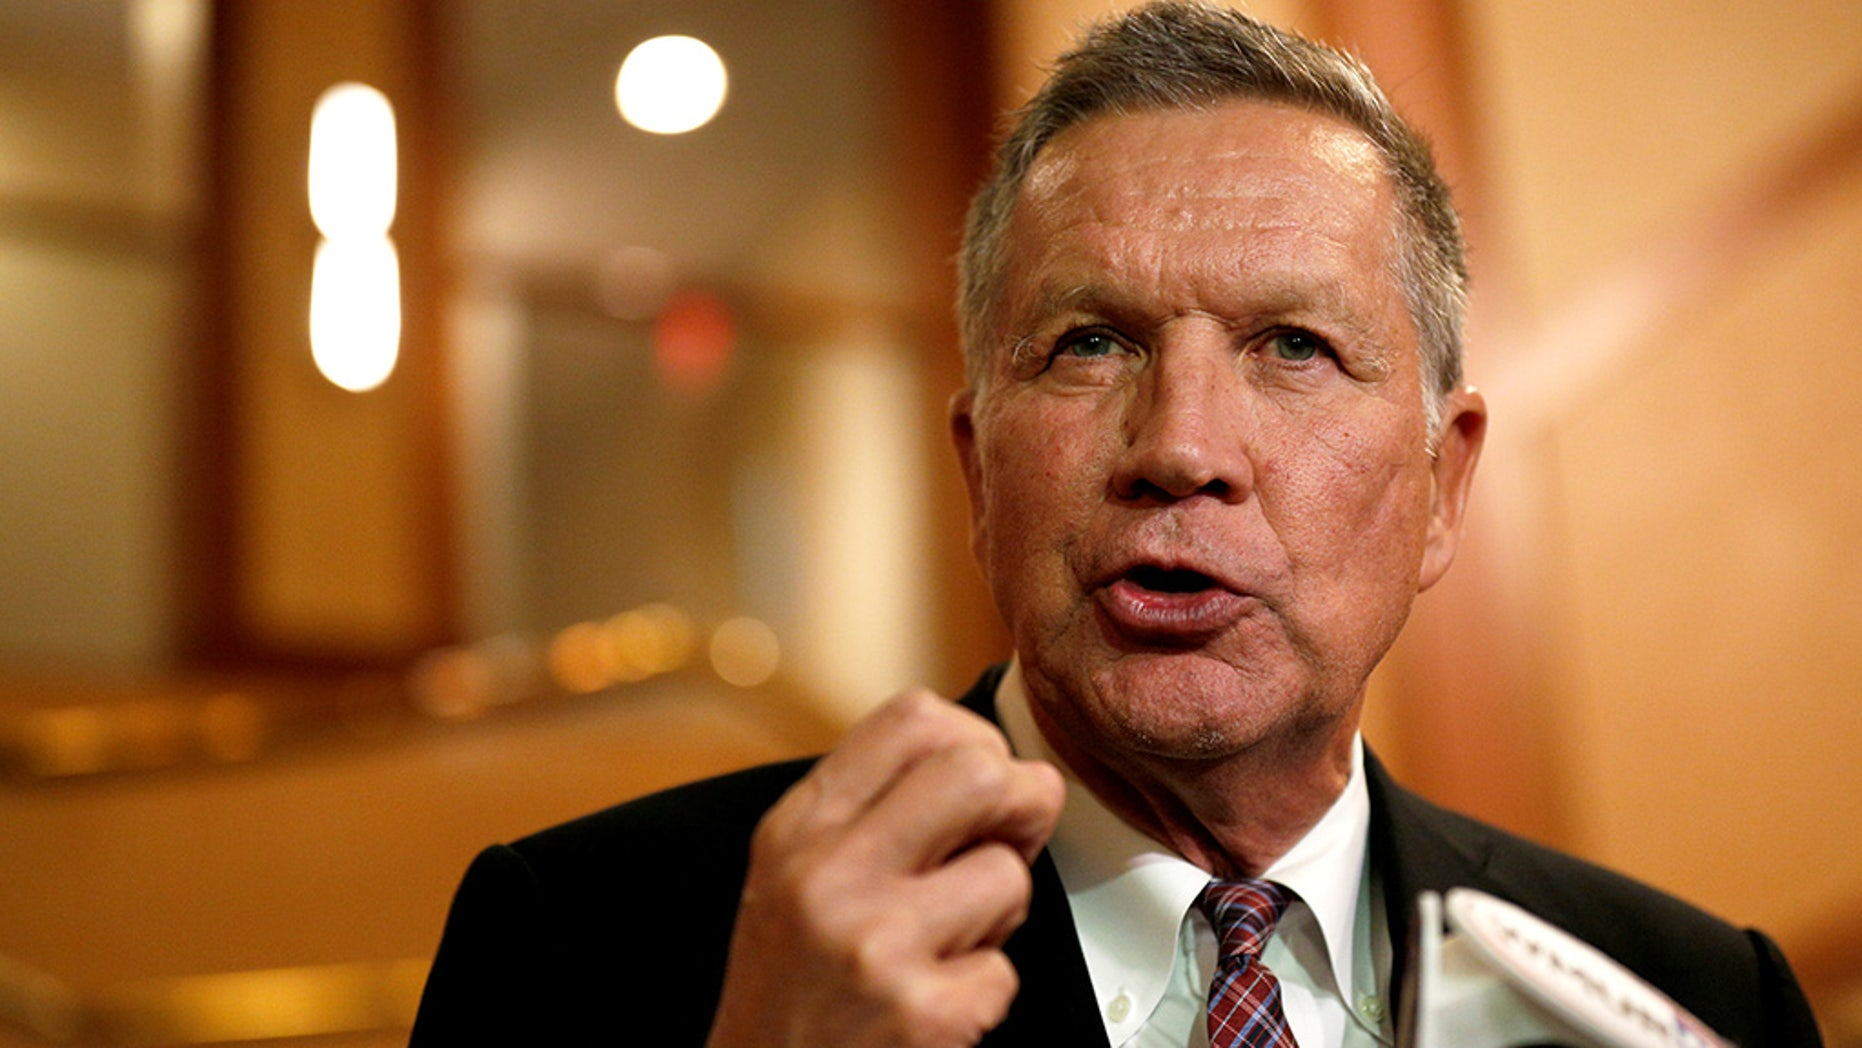 Ohio Governor and former presidential candidate John Kasich speaks to the press in Concord, New Hampshire, U.S., November 15, 2018.